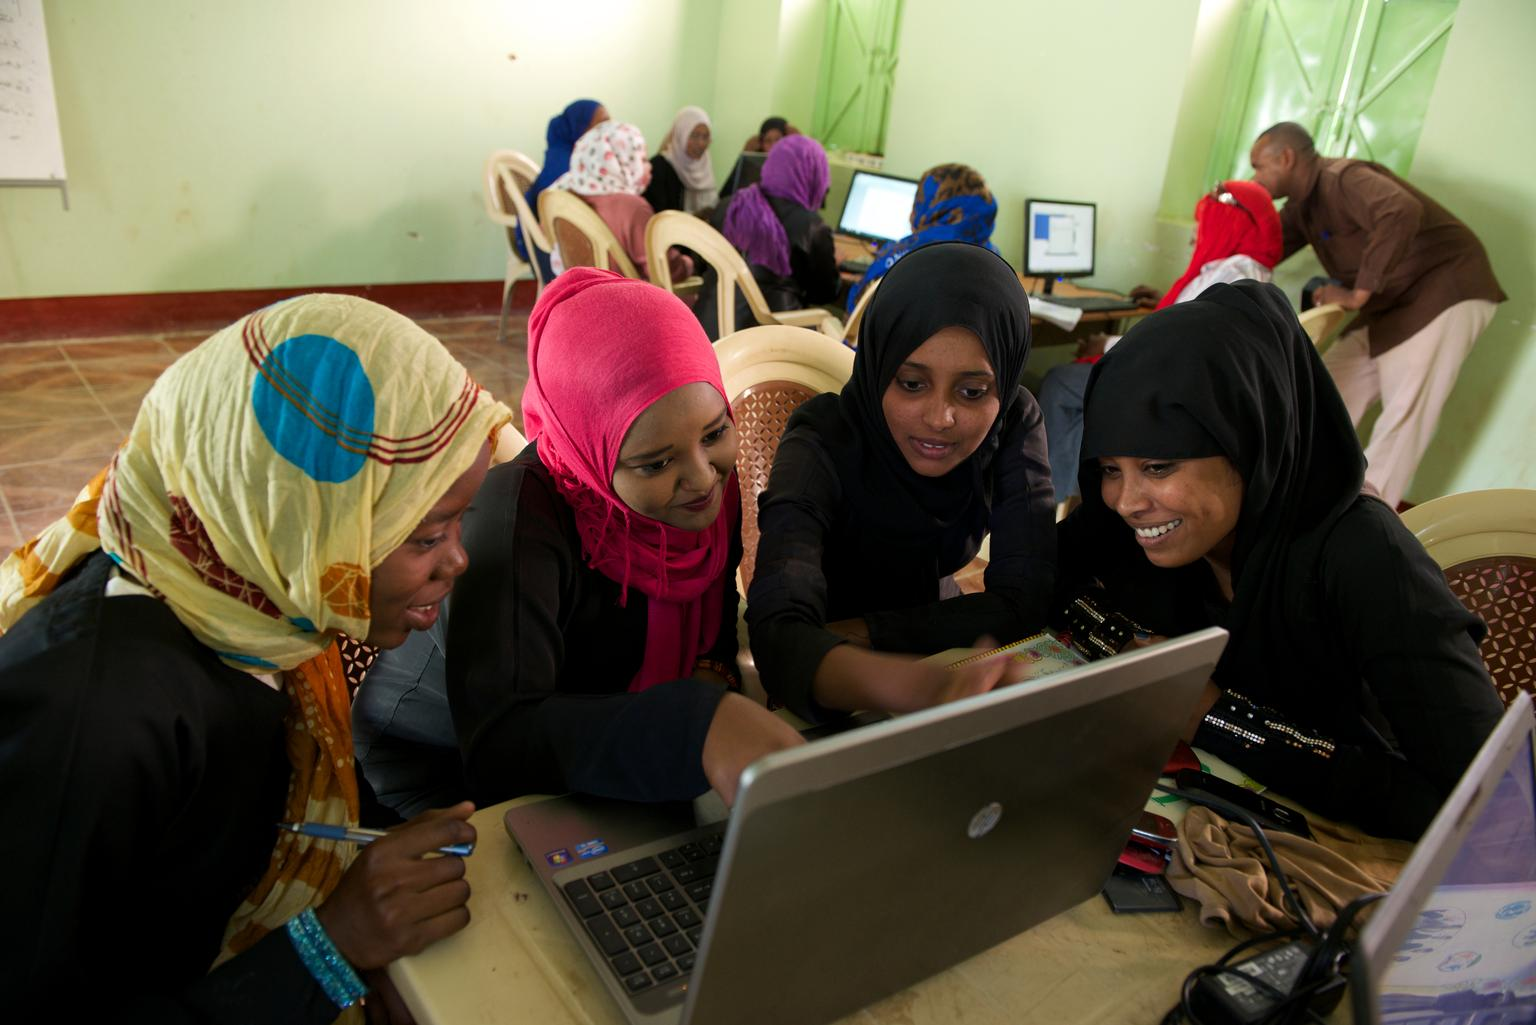 A group of young people attend a computer workshop at a Youth Centre in Kasala. Sudan.